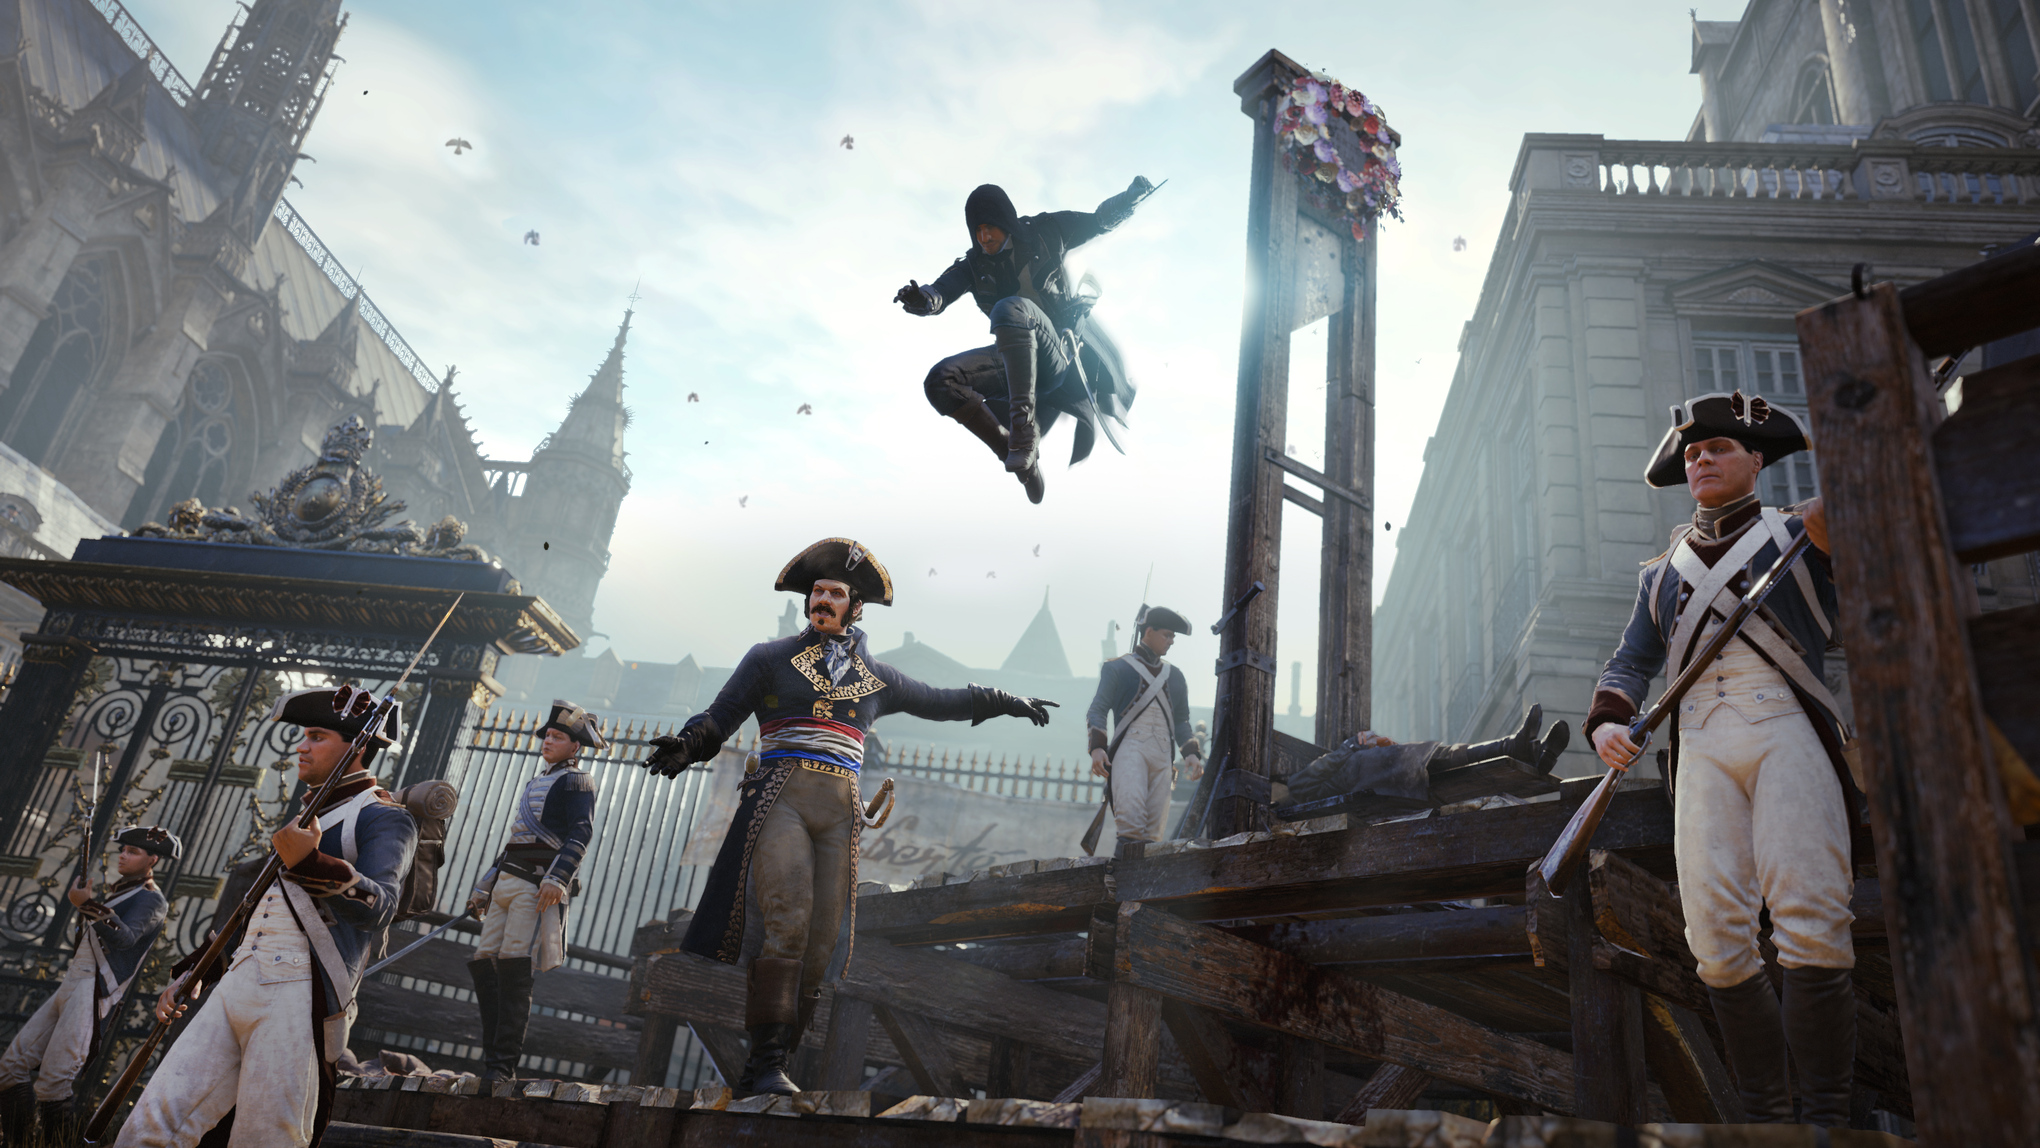 Ubisoft is bringing an Assassin's Creed parkour course and more to Comic-Con